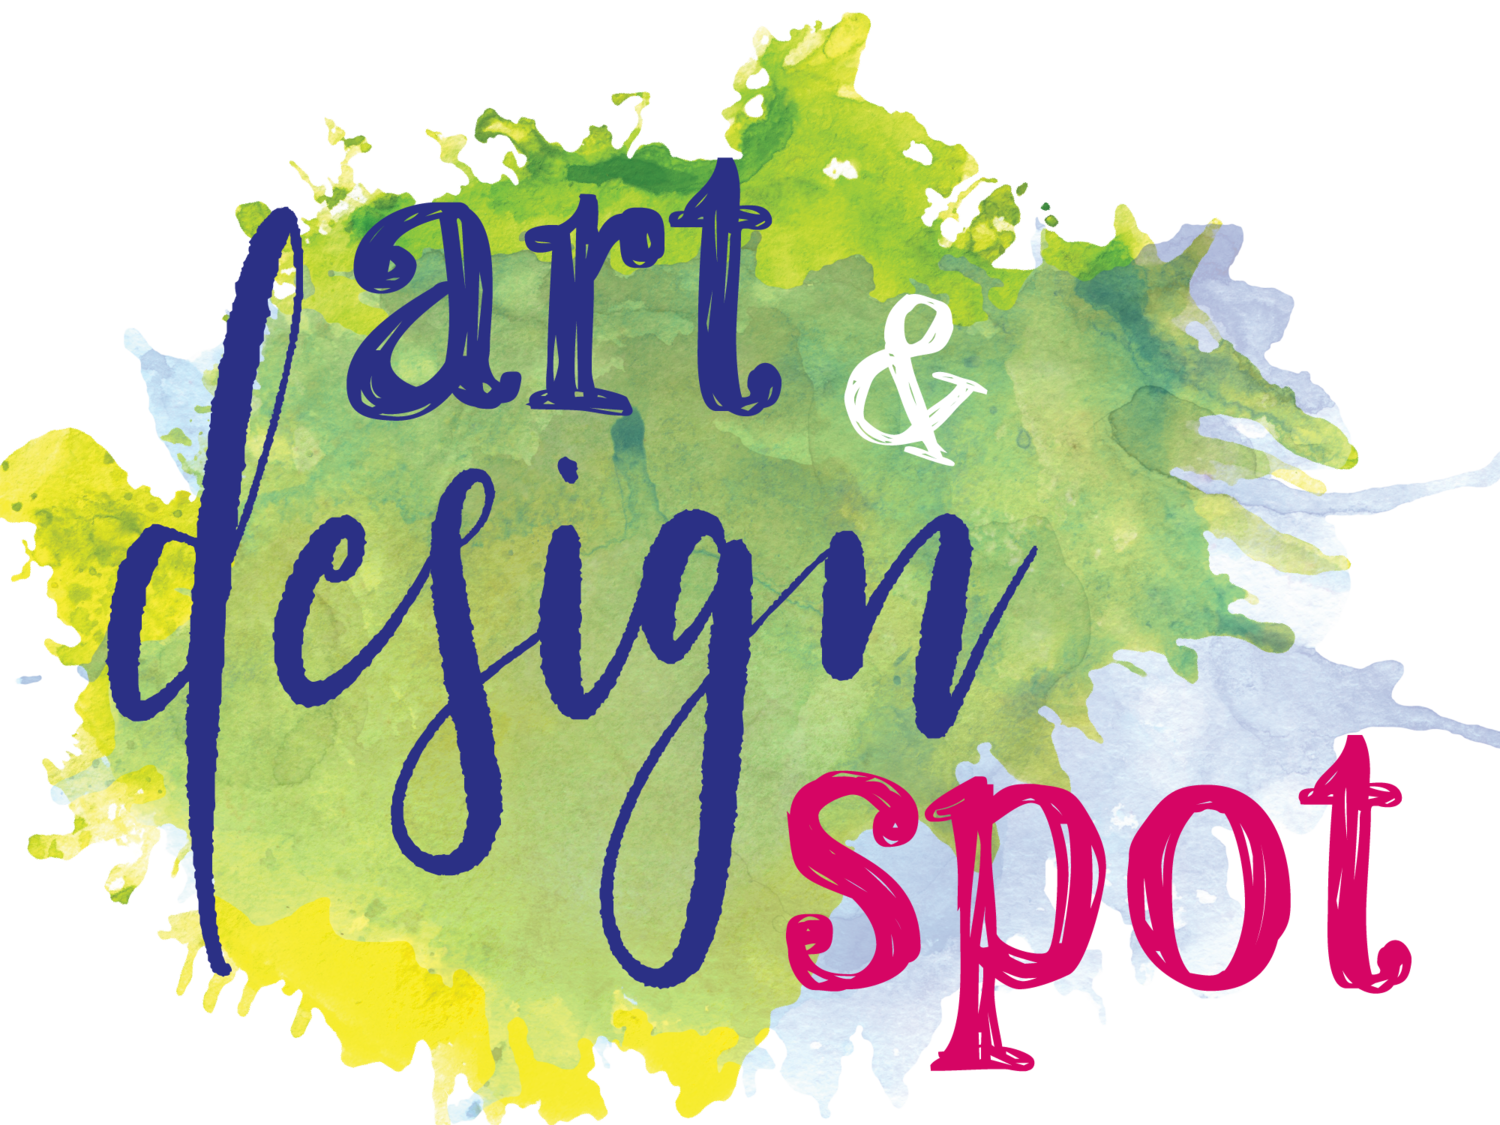 The Art & Design Spot